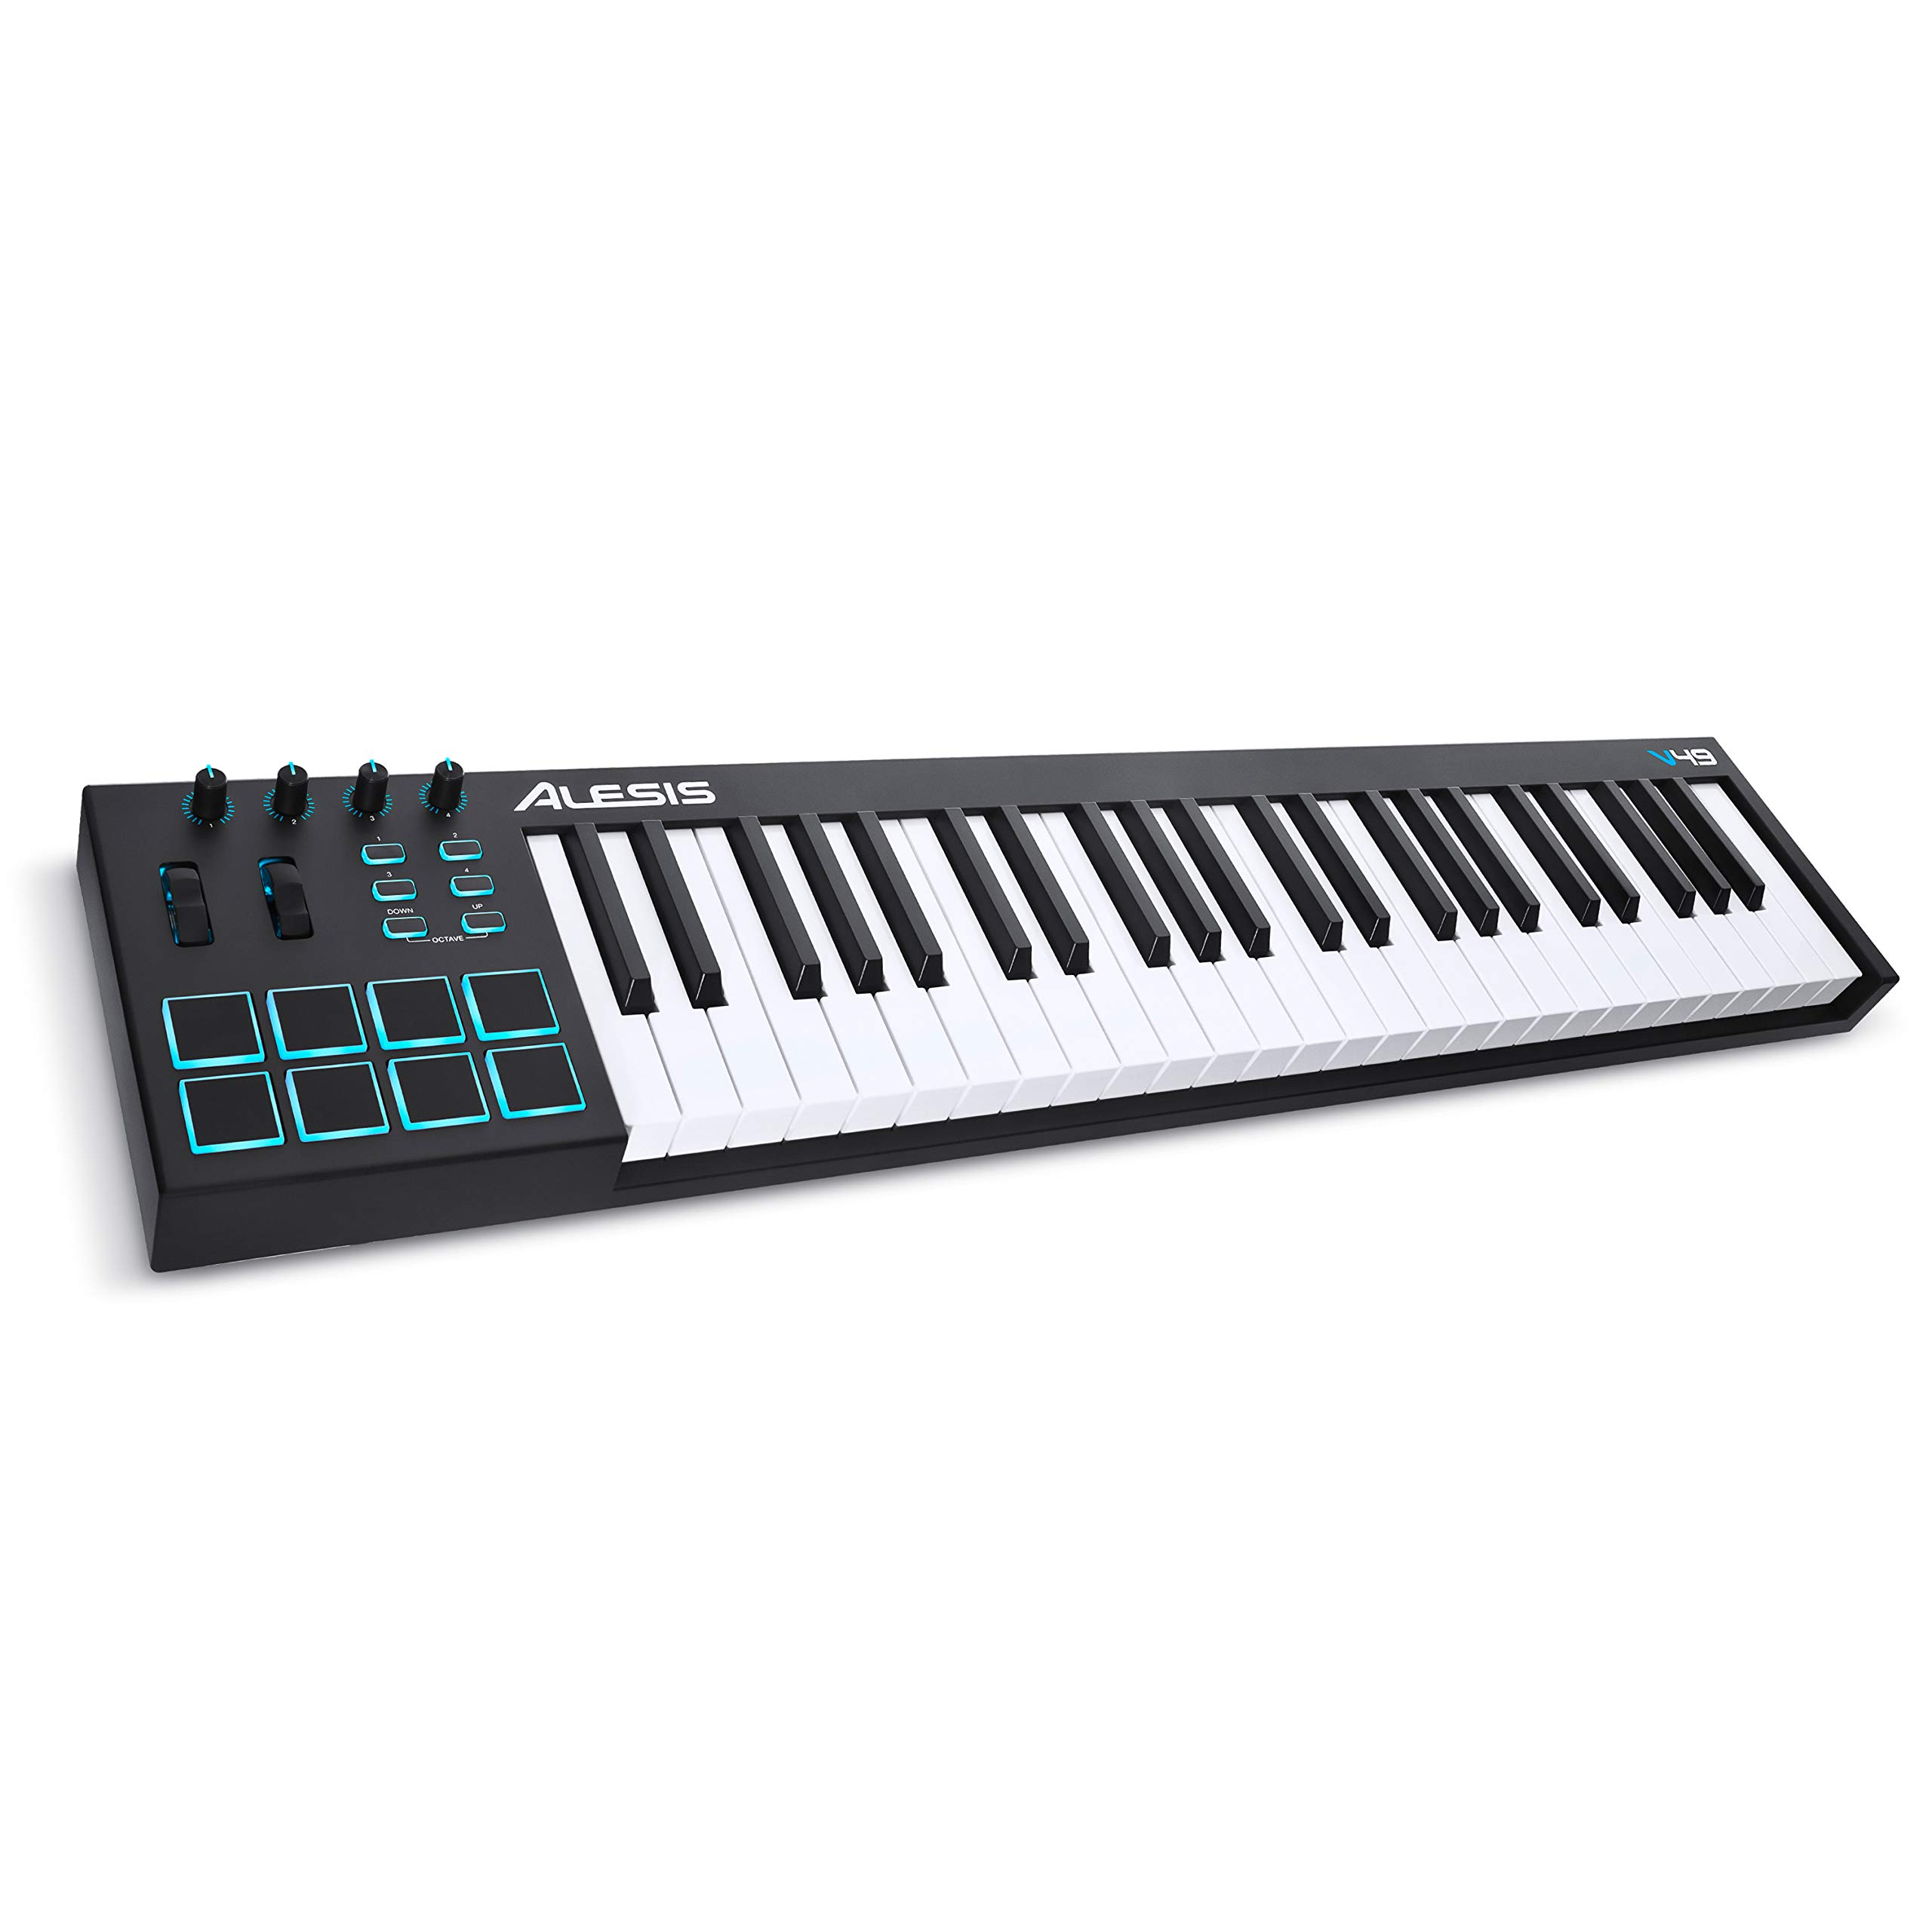 Alesis V49 Keyboard Controller Buttons